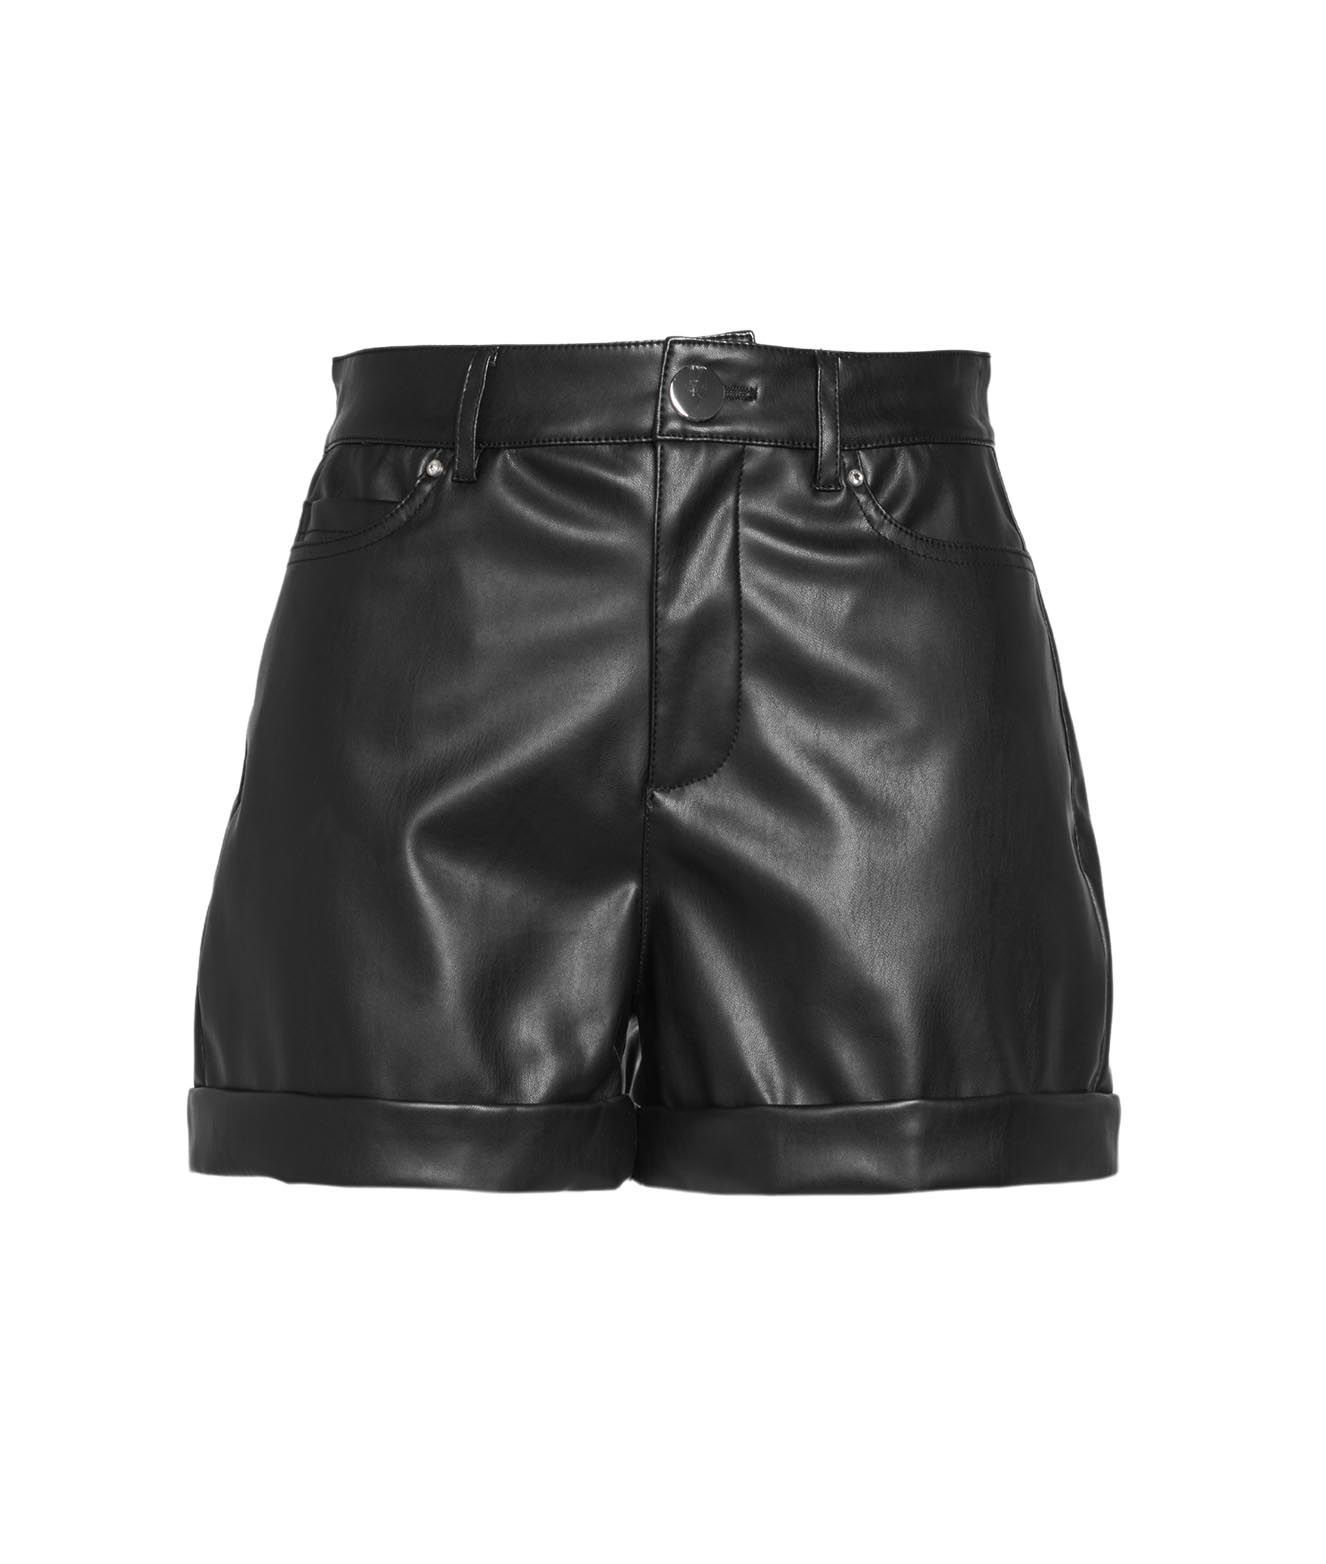 Guess Shorts GUESS WOMEN'S W1RD0HWAOO011JBLK BLACK OTHER MATERIALS SHORTS